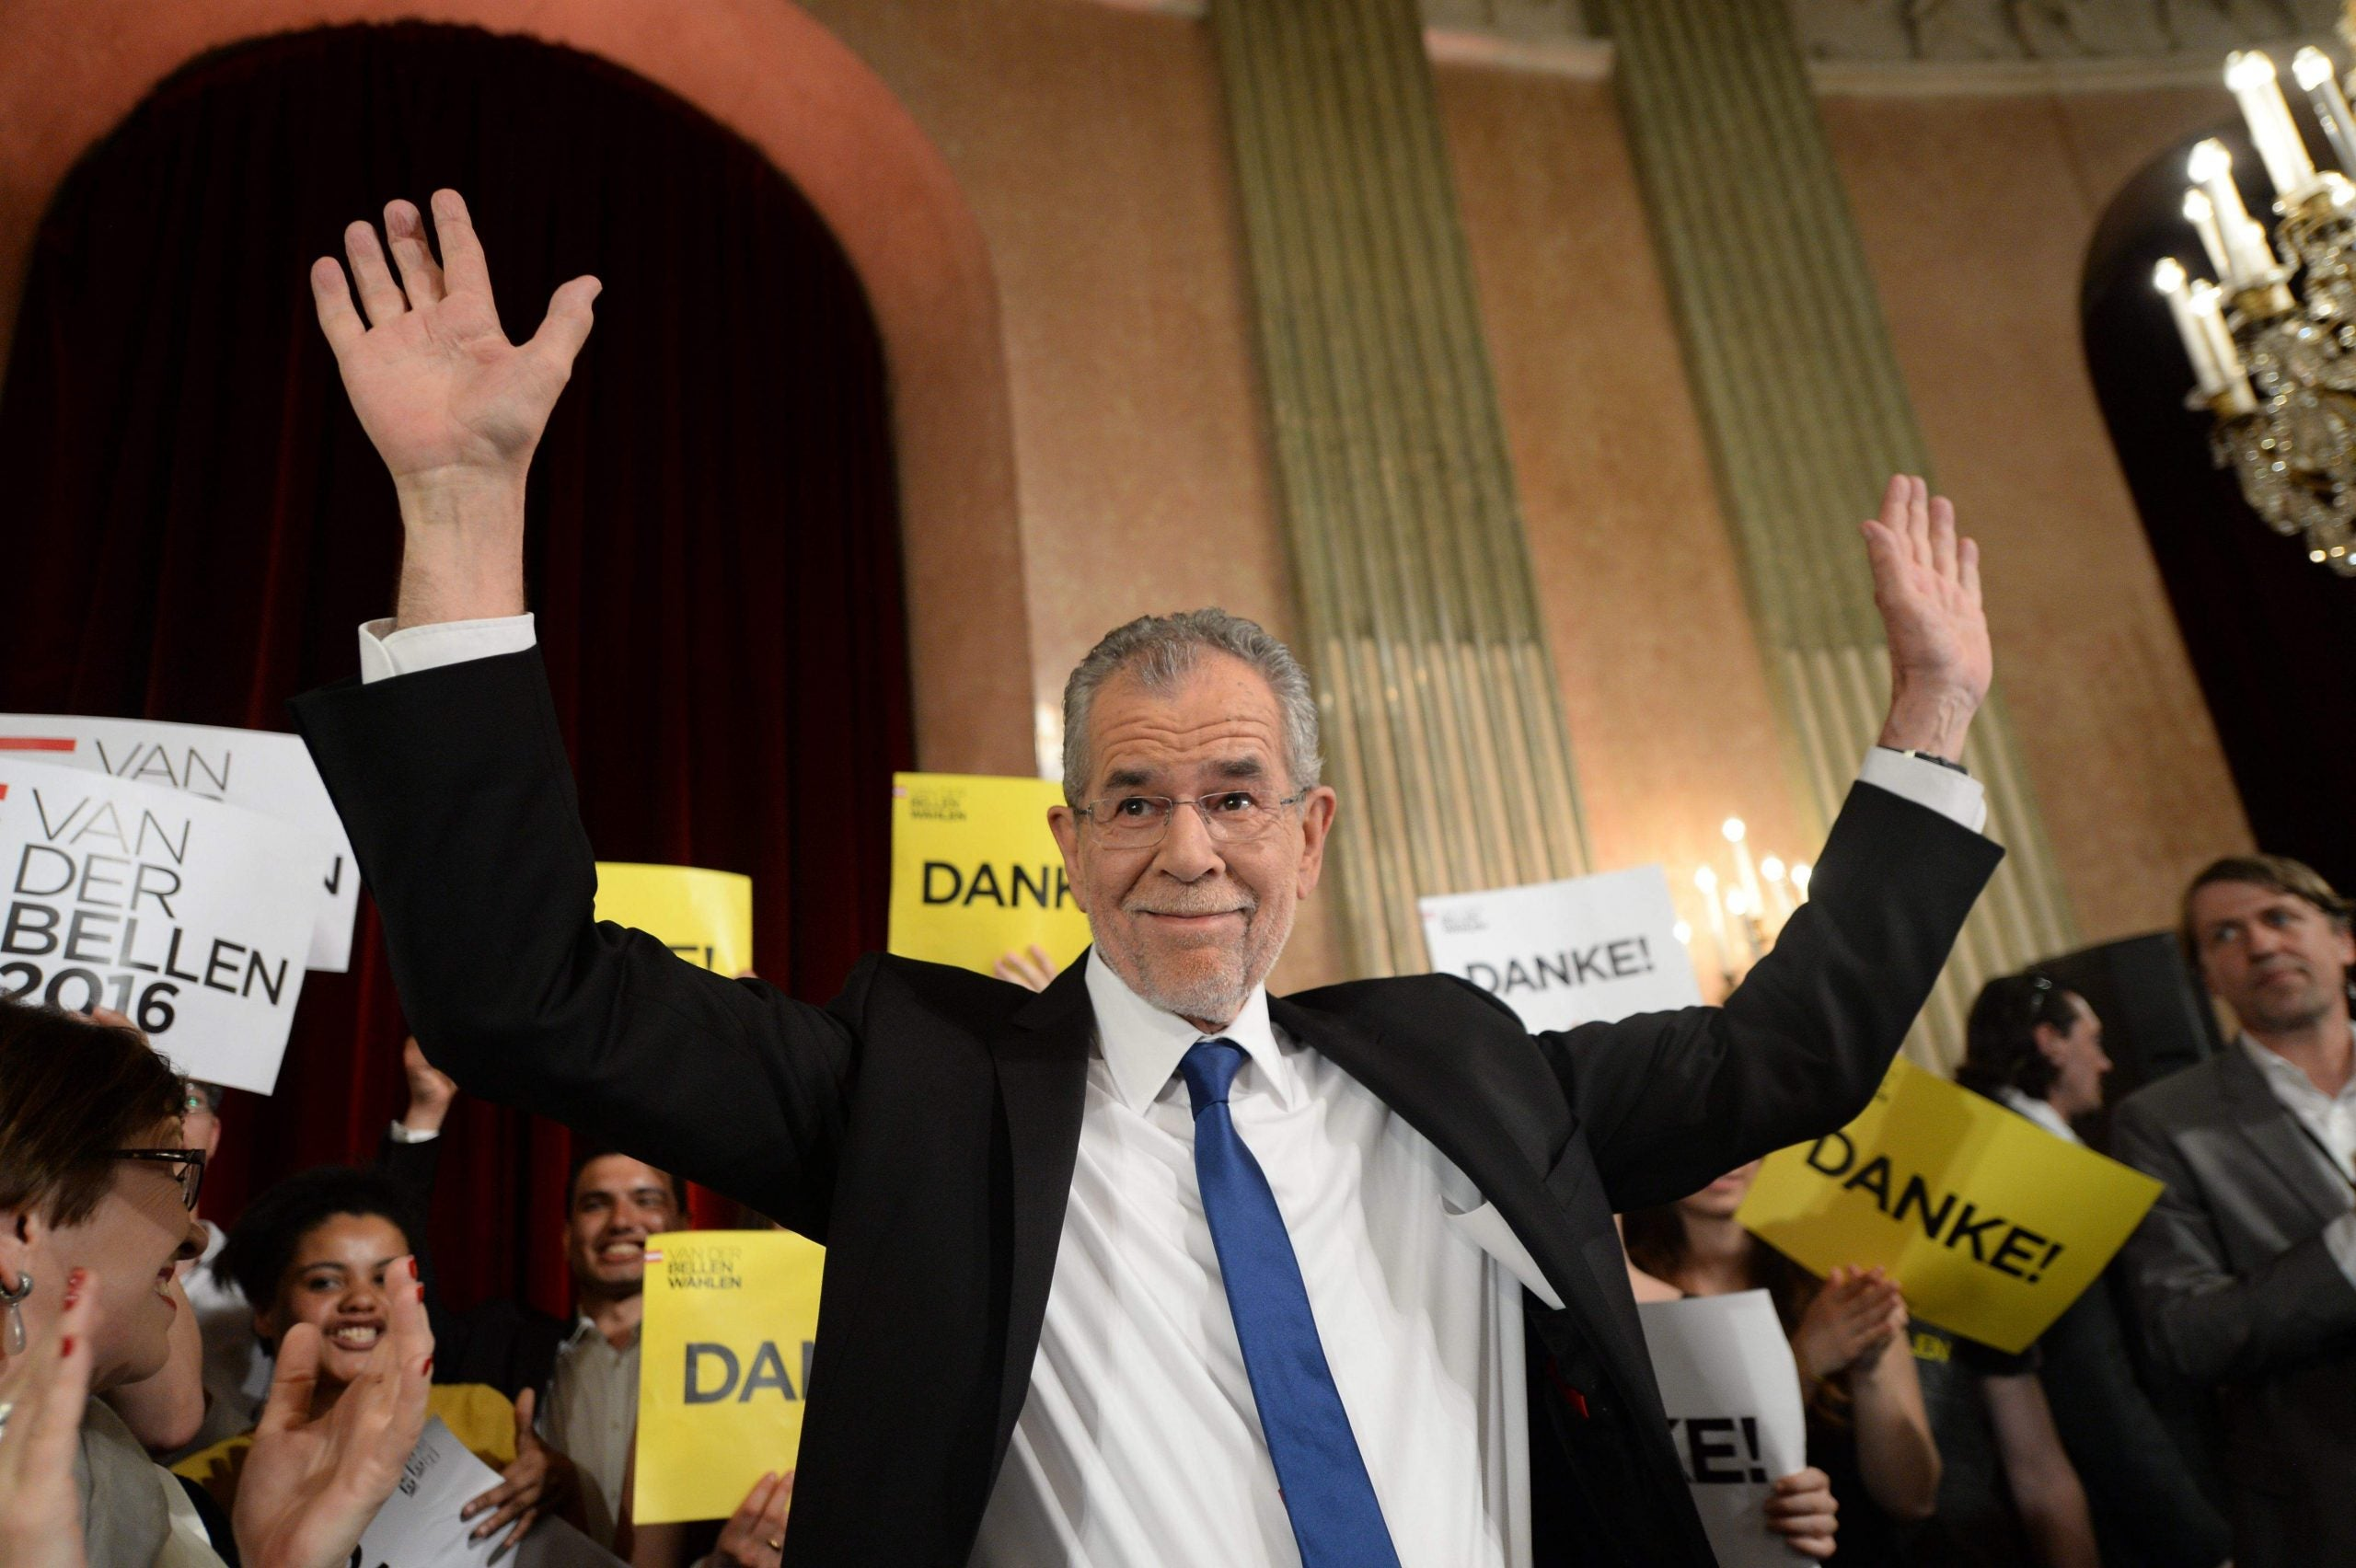 Austria rejects far-right presidential candidate by narrow margin